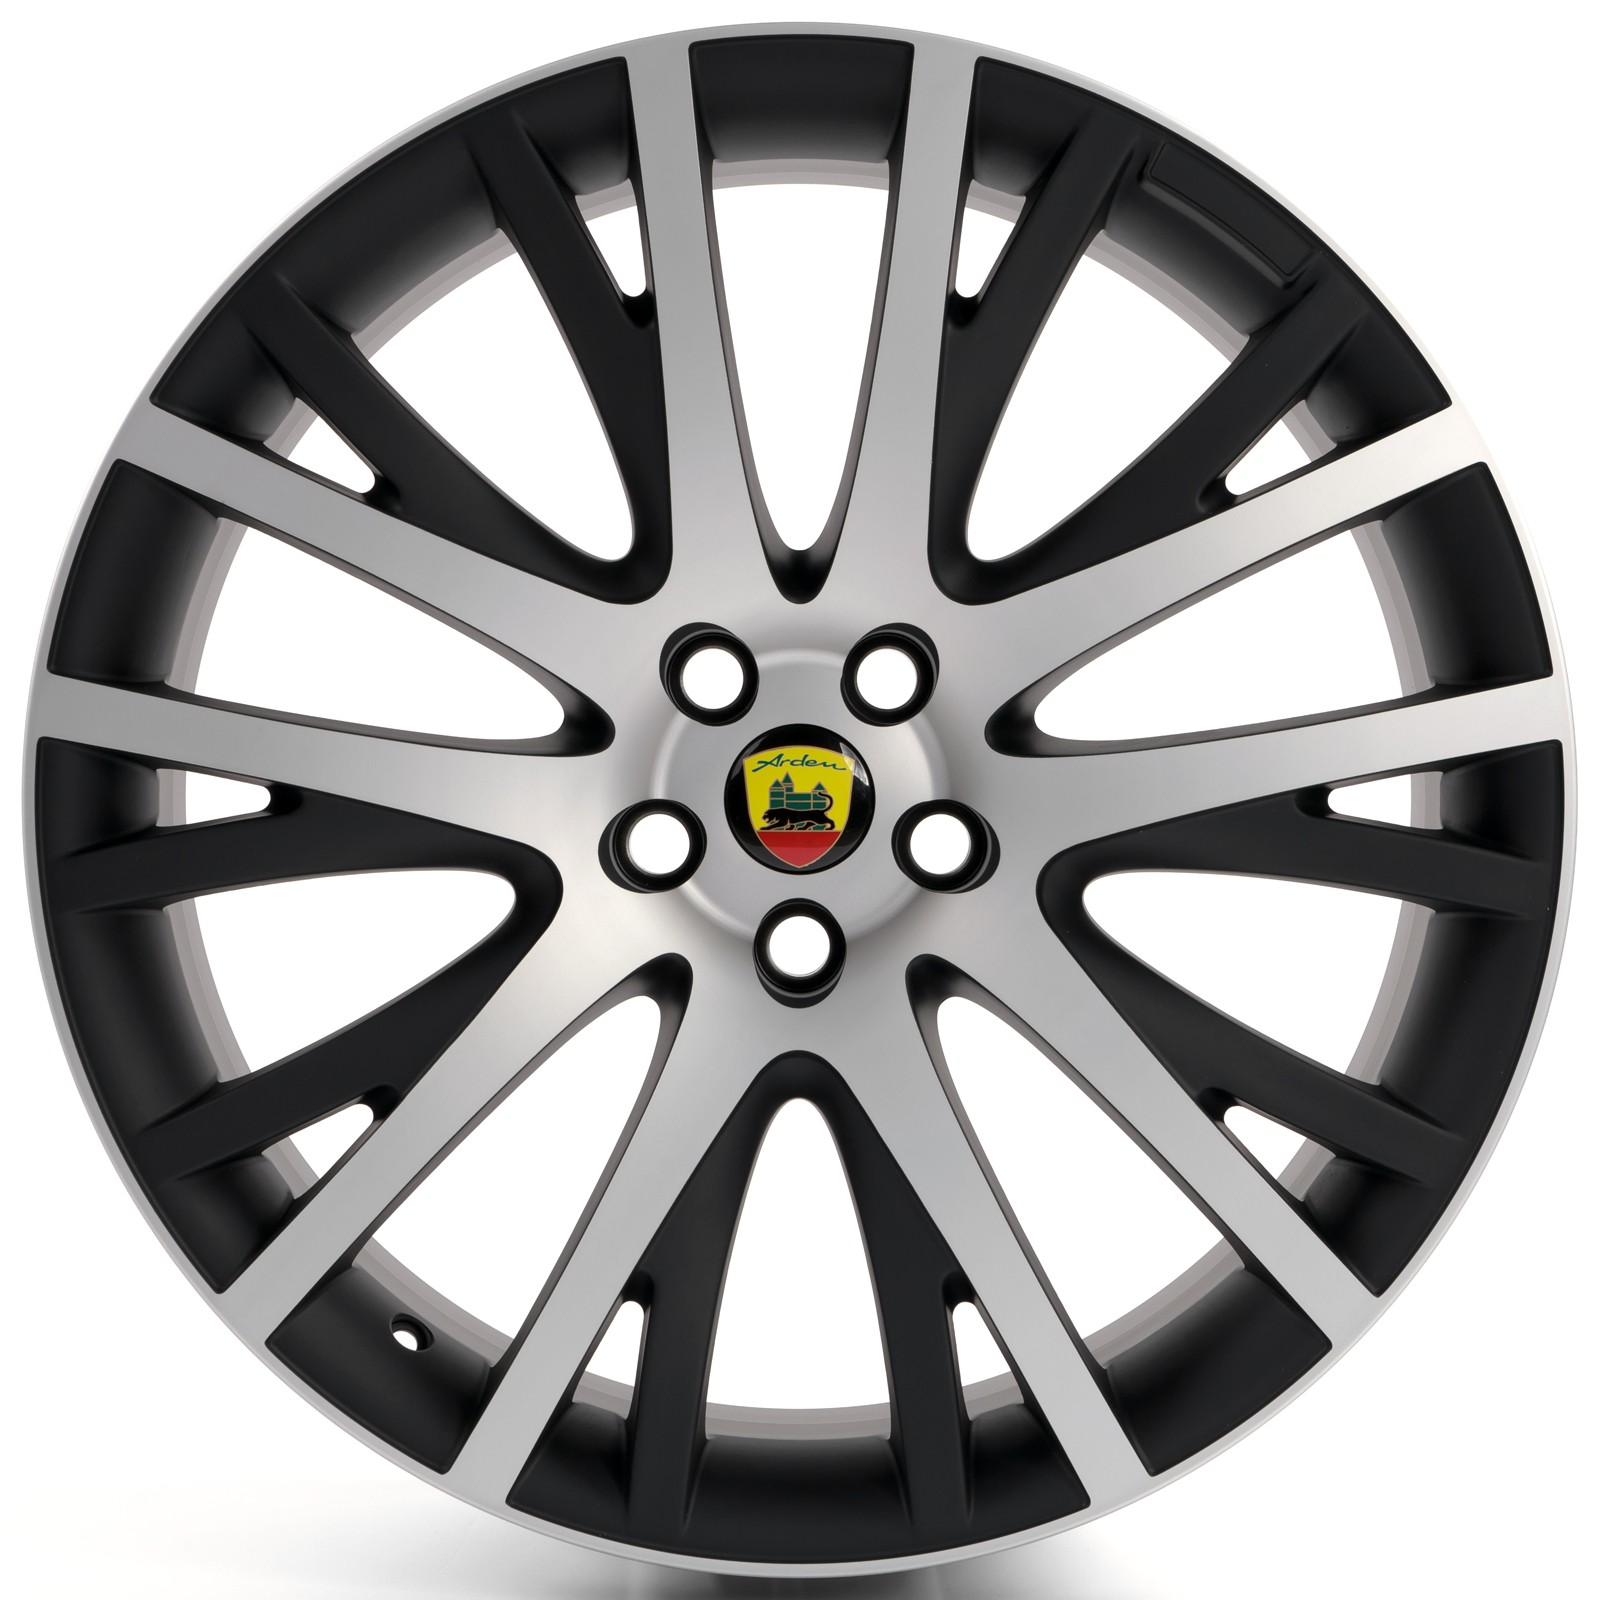 "Arden DAKAR II Wheel in 10 x 22"" for Range Rover and Range Rover Sport"